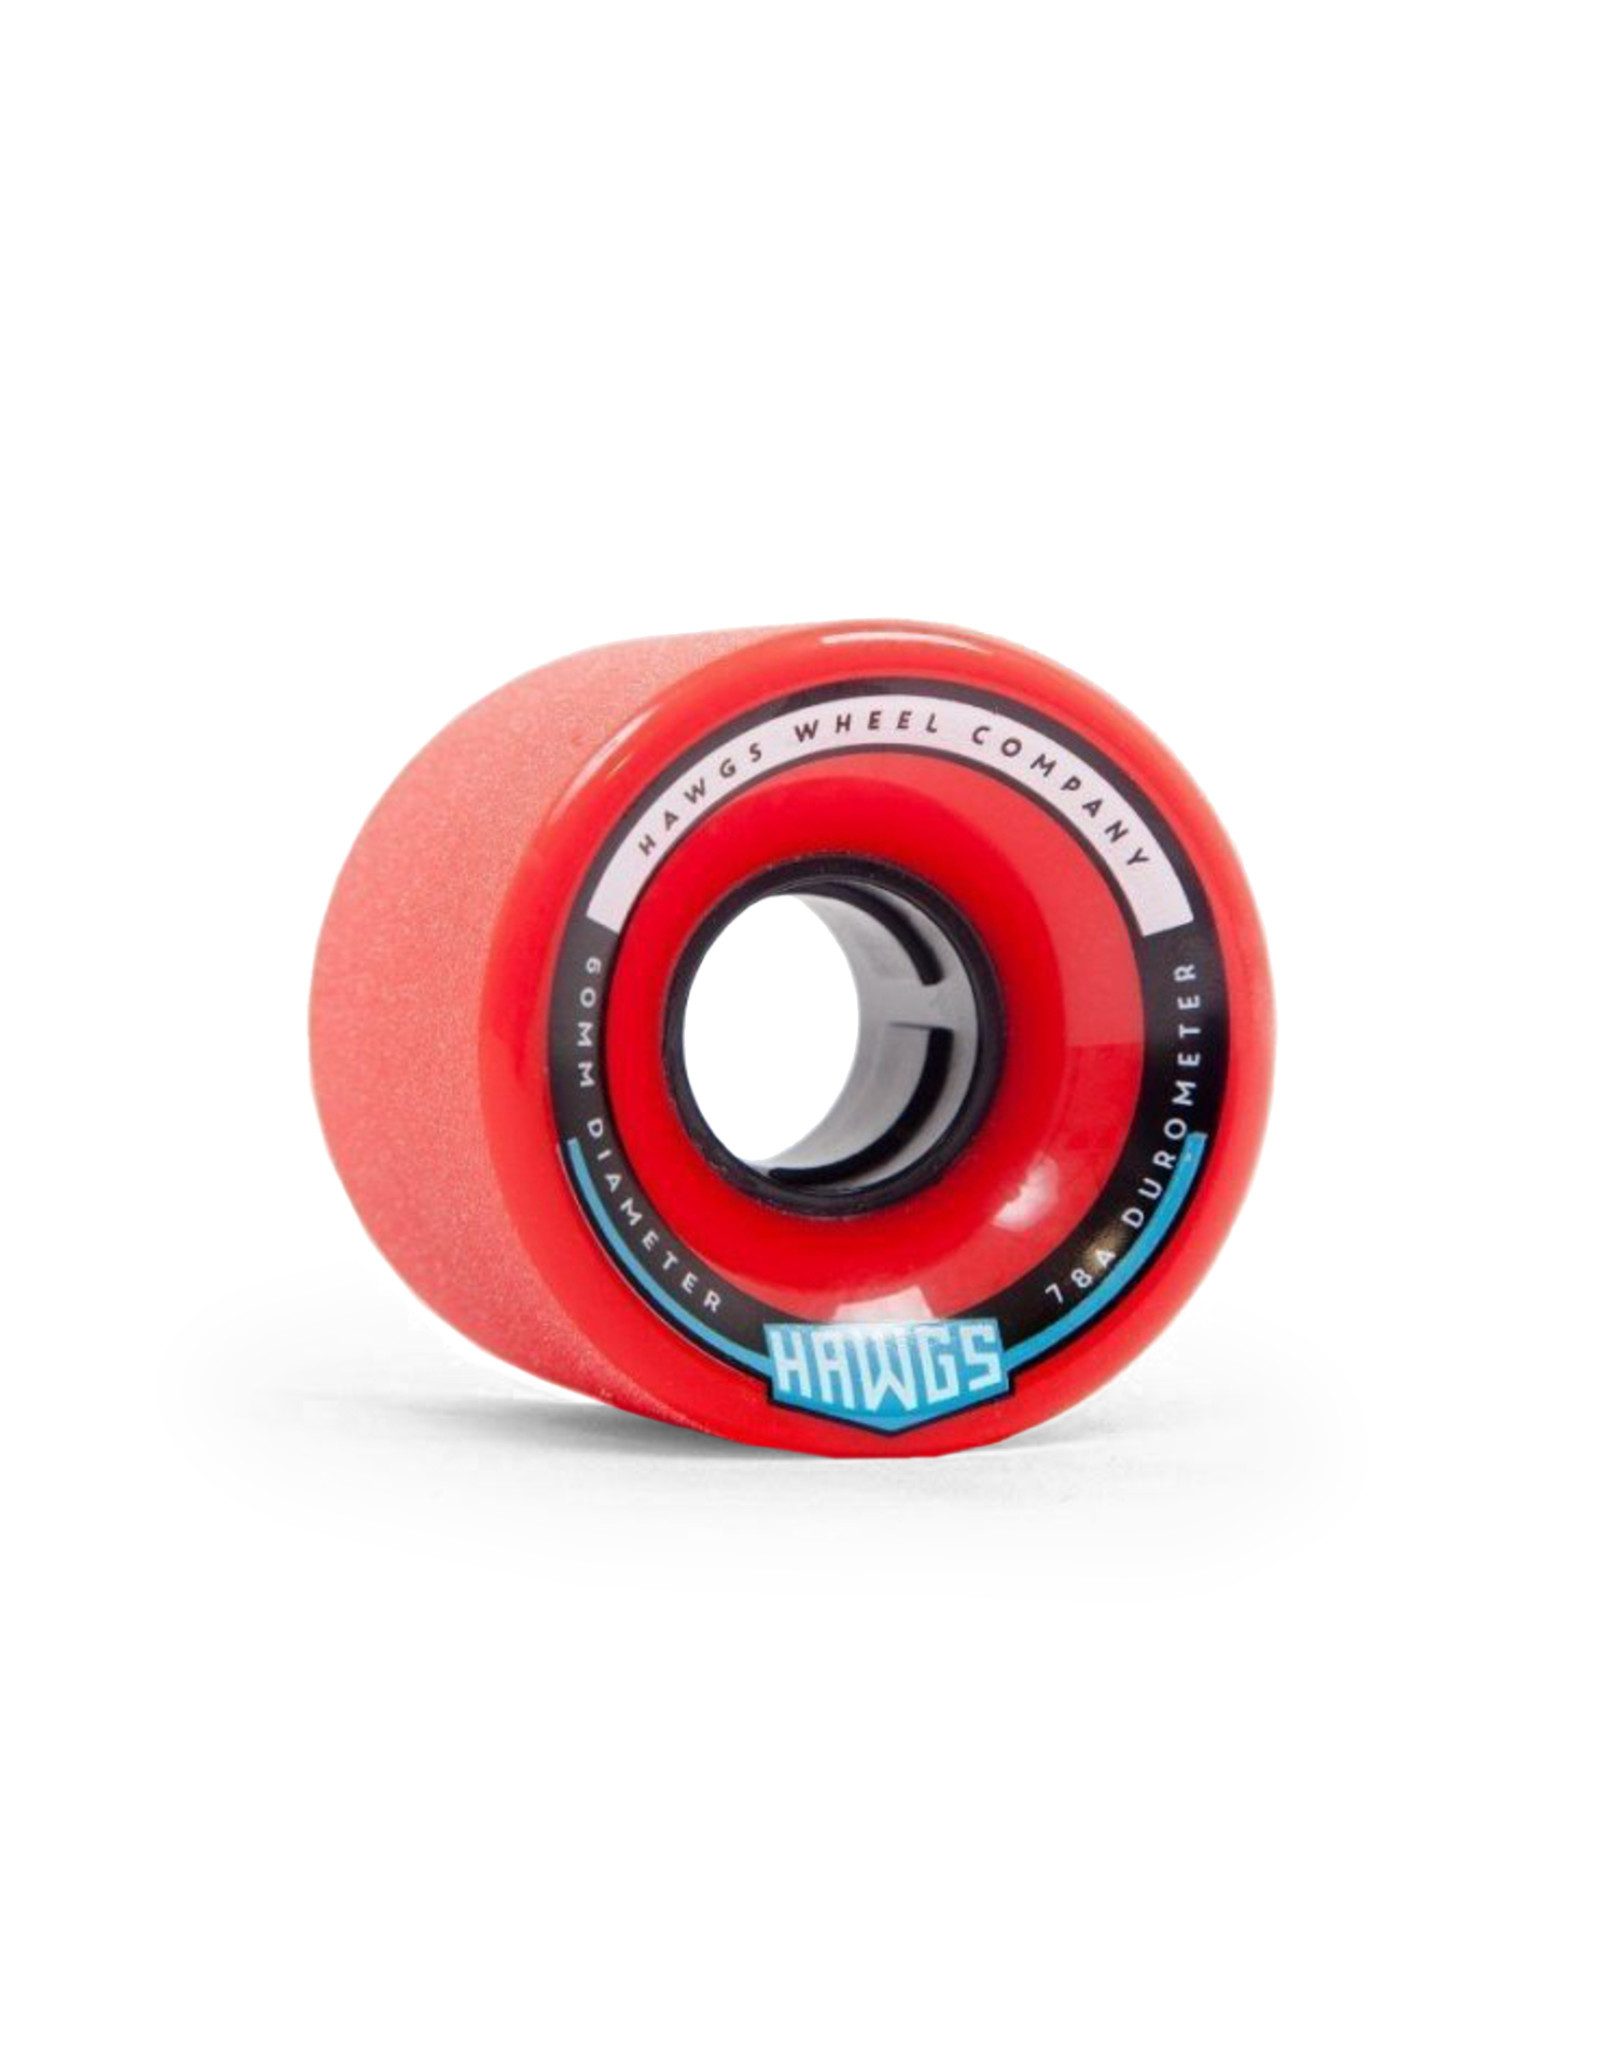 Hawgs Wheels Hawgs Chubby Rollen 60 mm 78A Red 4er-Set